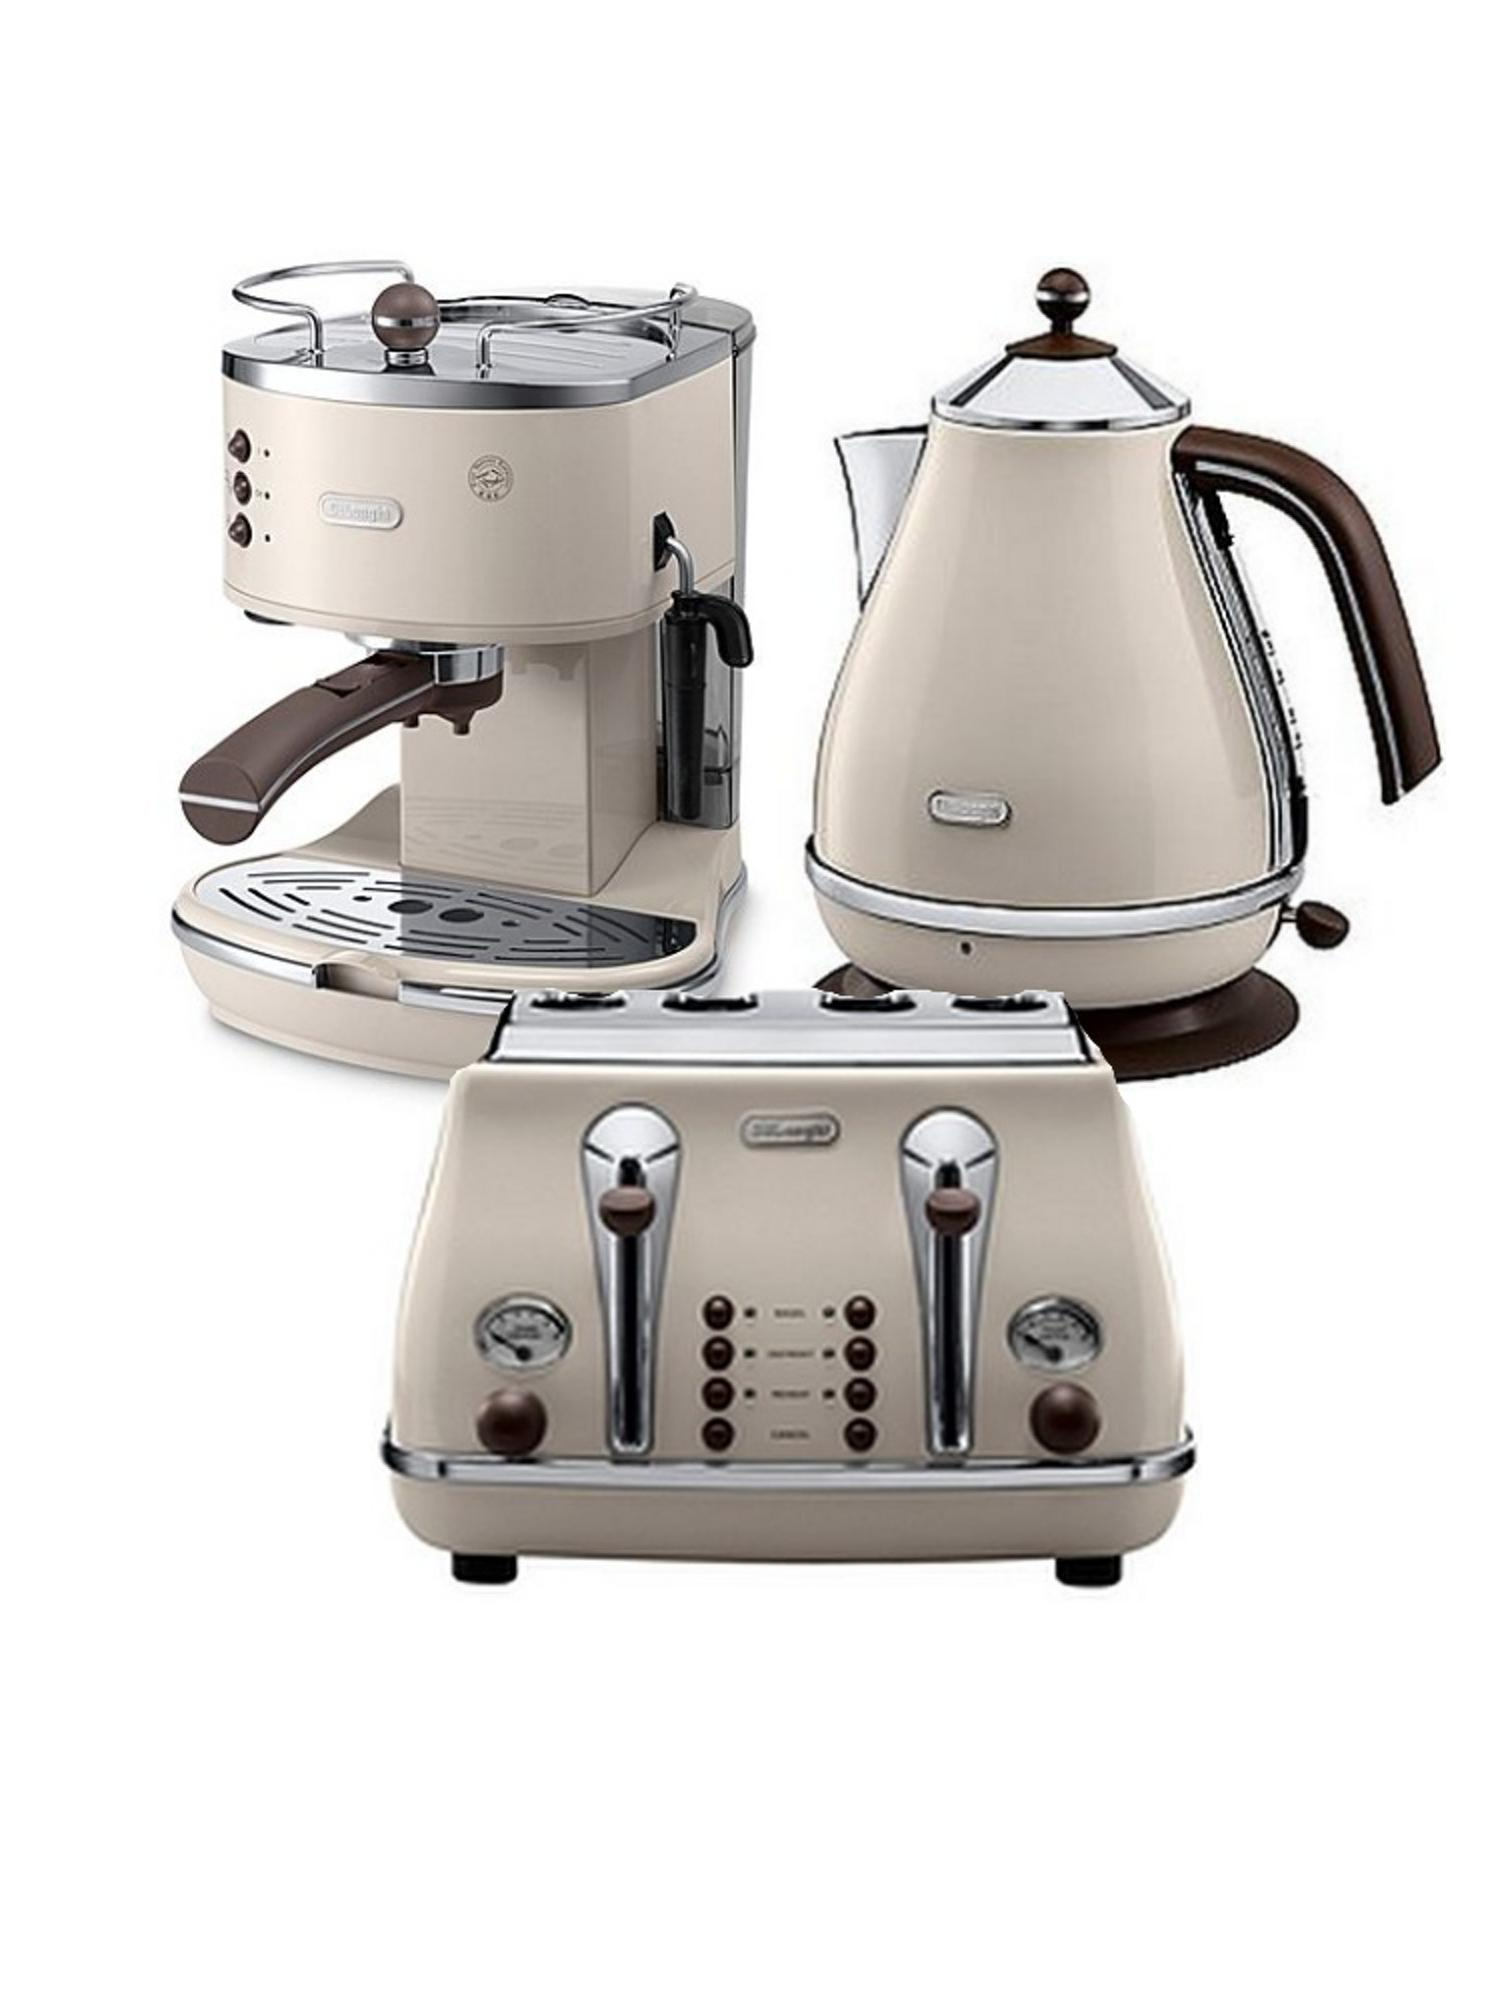 Uncategorized Delonghi Kitchen Appliances delonghi kitchen appliances house of fraser vintage icona range